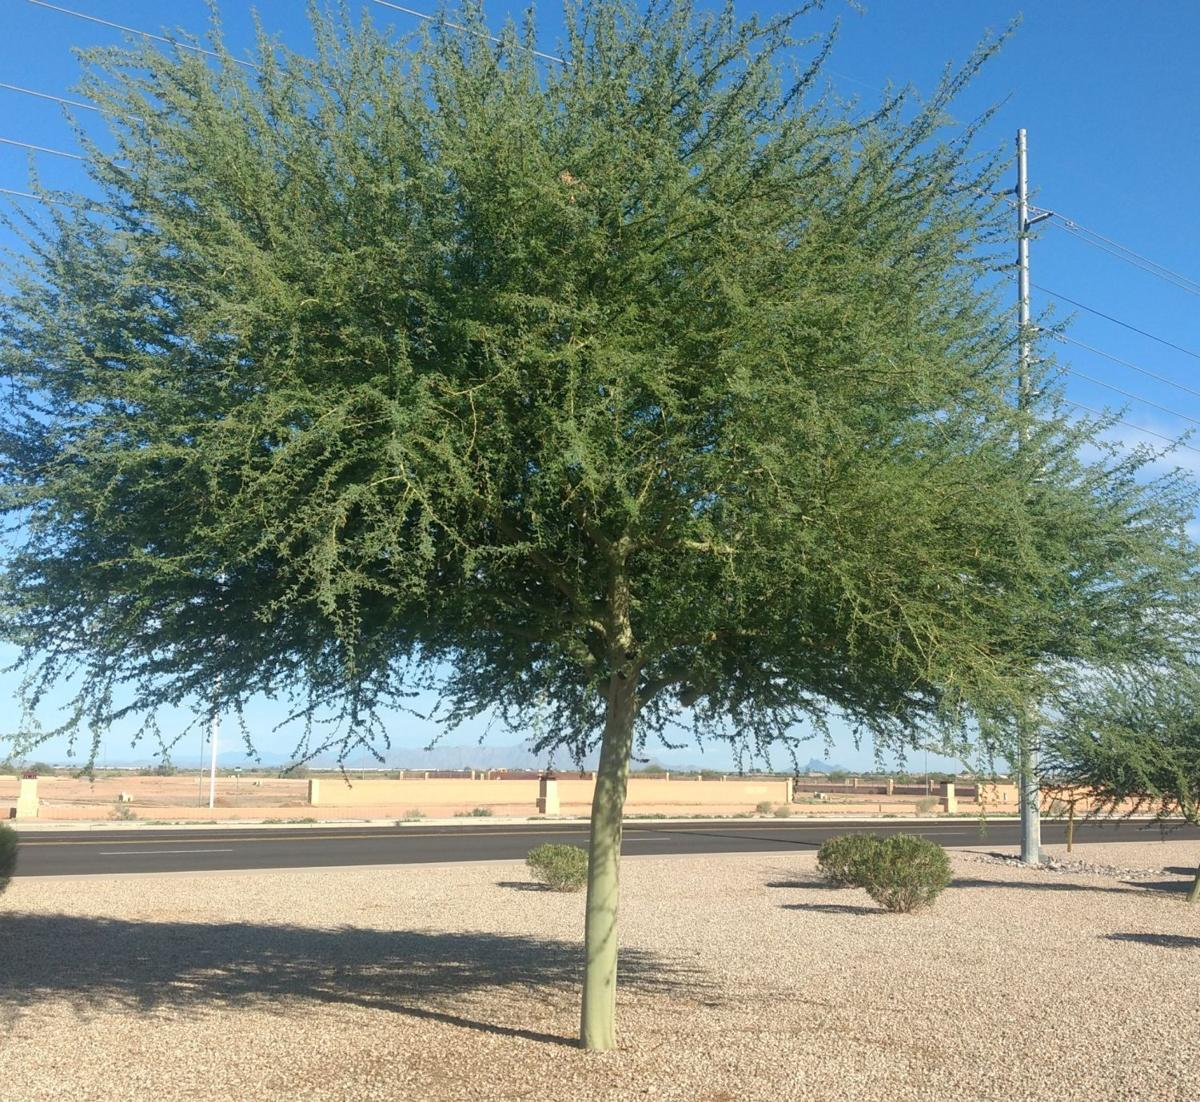 Gibson: Getting to know the Parkinsonia (palo verde) trees | Health ...